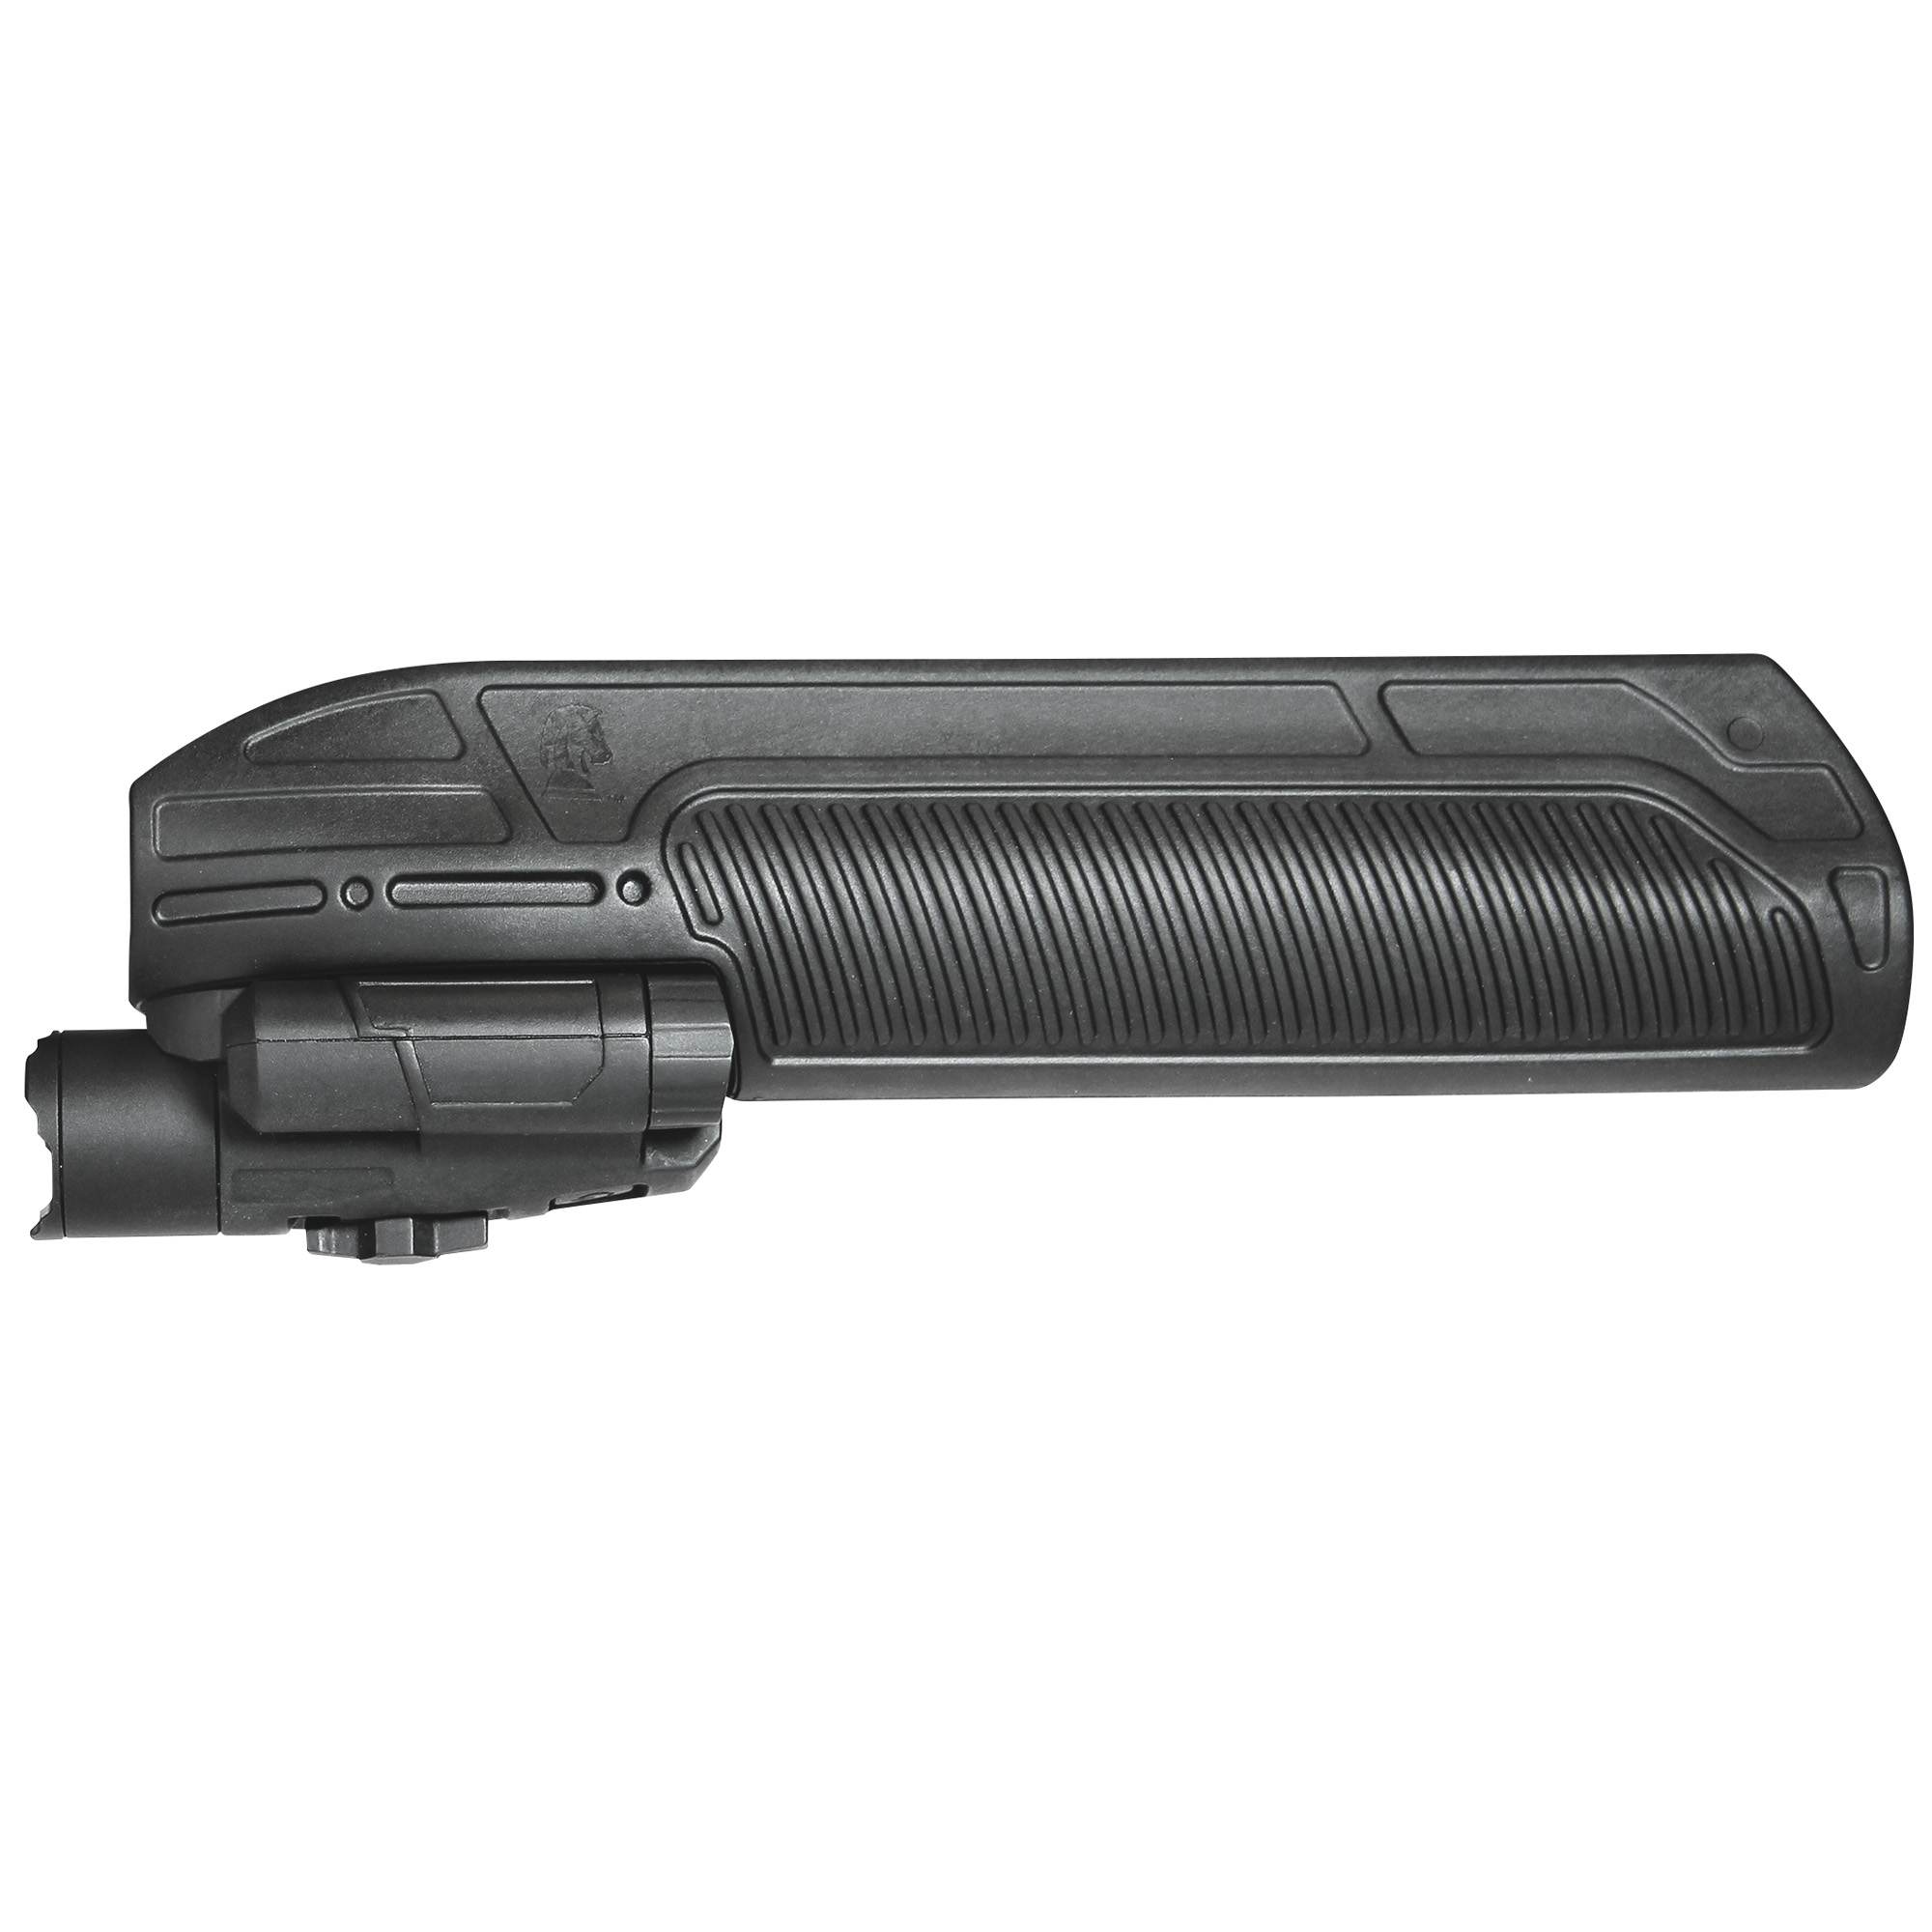 "The Adaptive Tactical EX Performance Tactical Light Forend for Mossberg 500 & 88*"" 590 series 12g pump shotguns is a compact and powerful 300-lumen tactical flashlight that seamlessly integrates into the forend body. Three levels of illumination are designed to offer wide"" smooth beams ideal for close-range"" shotgun applications. Removable light reveals a 2 inch picatinny rail for attaching other accessories"" or rail may be concealed under the included nose cap."